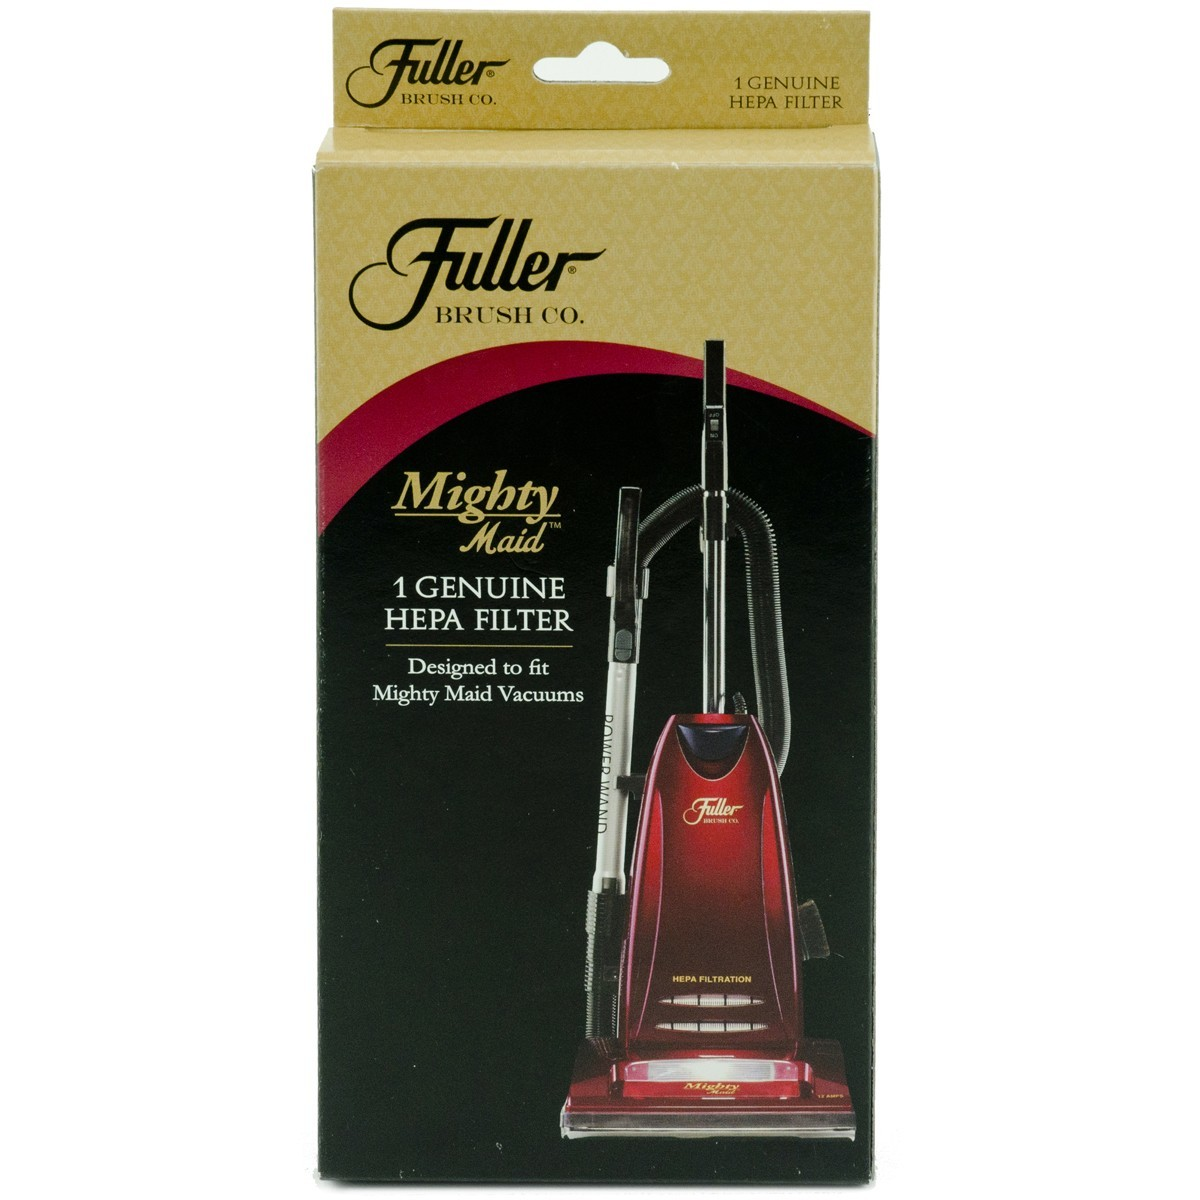 Fuller Brush HEPA Media Filter Fits Might Maid & Other Upright Vacuums